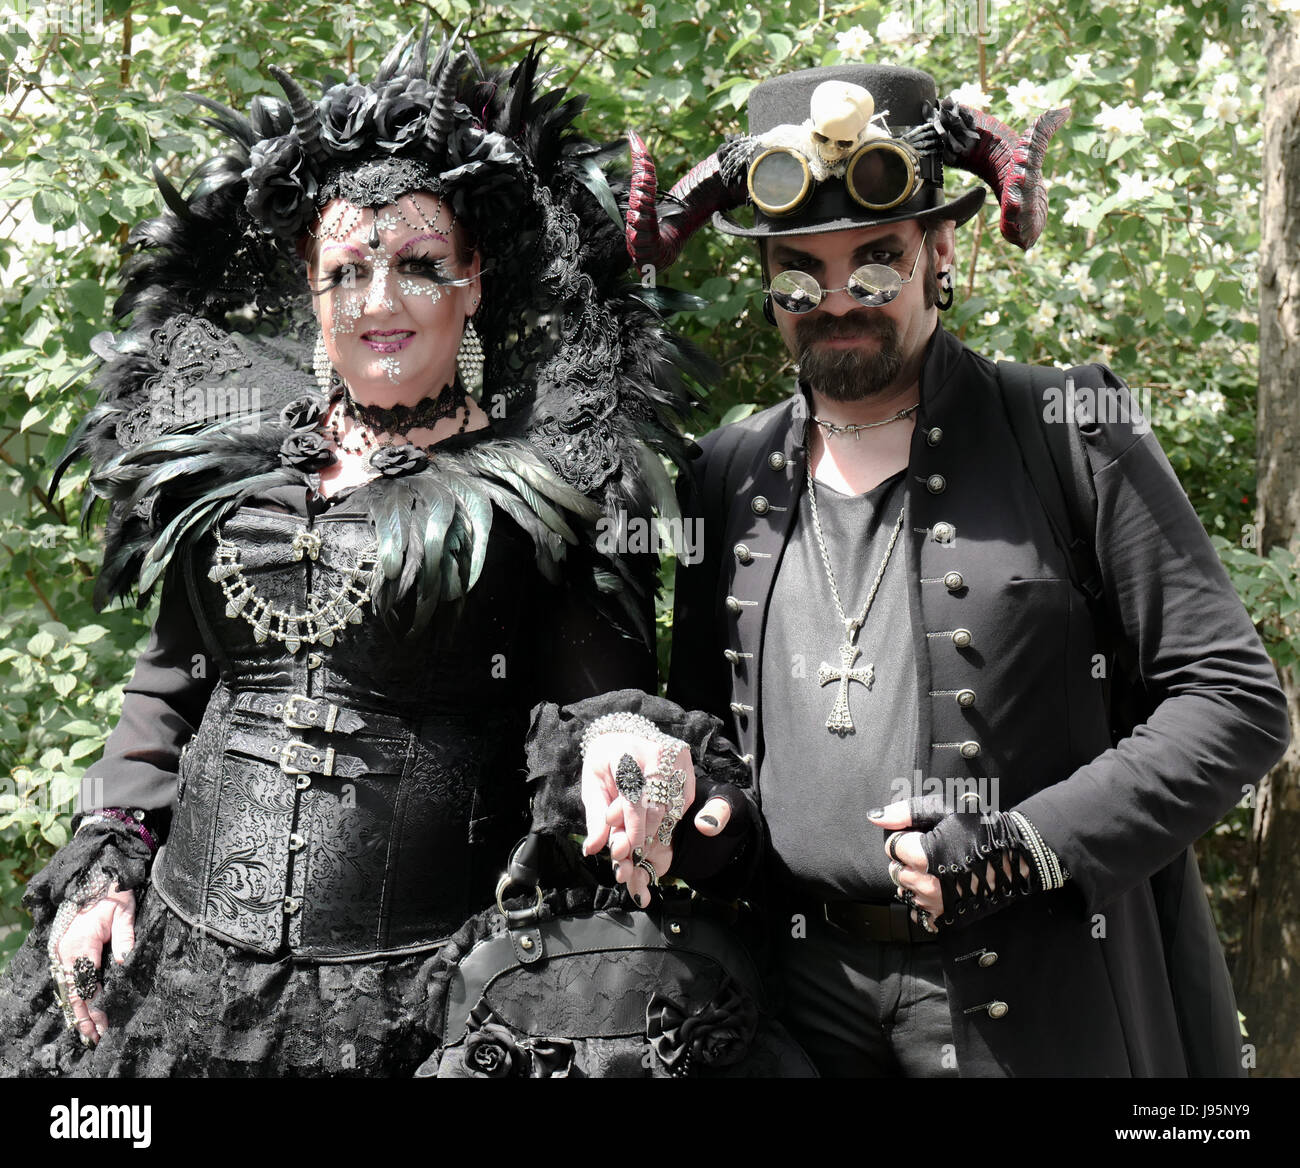 Leipzig Germany 5th June 2017 Participants Of The Wave Gotik Stock Photo Alamy